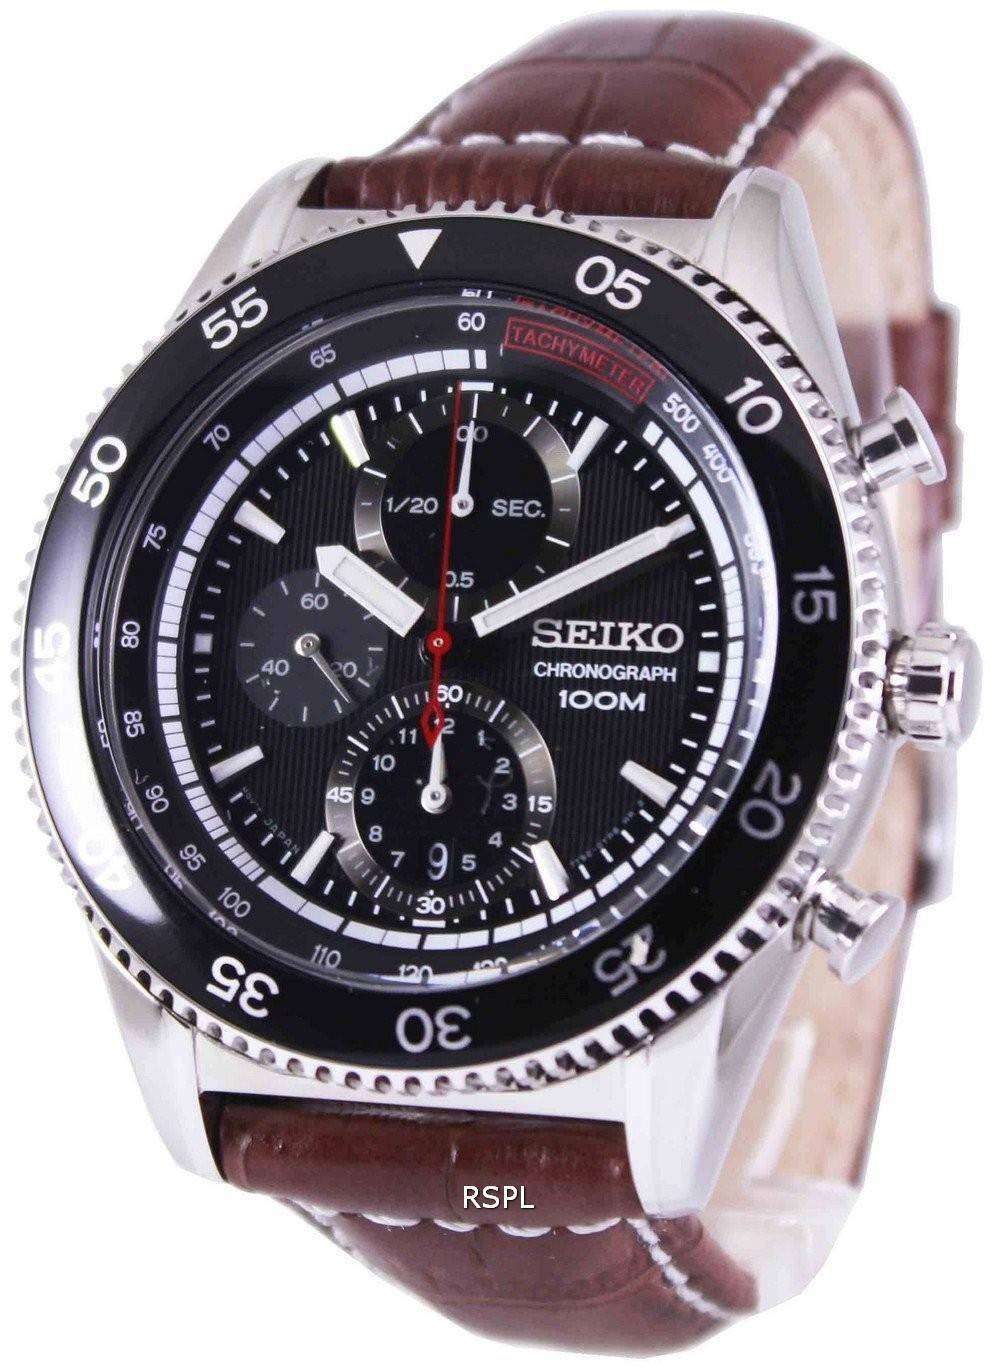 Seiko Chronograph Tachymeter 100m Sndg57p2 Mens Watch. Engagement Rings. Pave Anniversary Band. Quartz Earrings. Carrot Rings. Moonstone Earrings. Single Bangle. Sterling Silver Charm Anklet. Purchase Beads Online